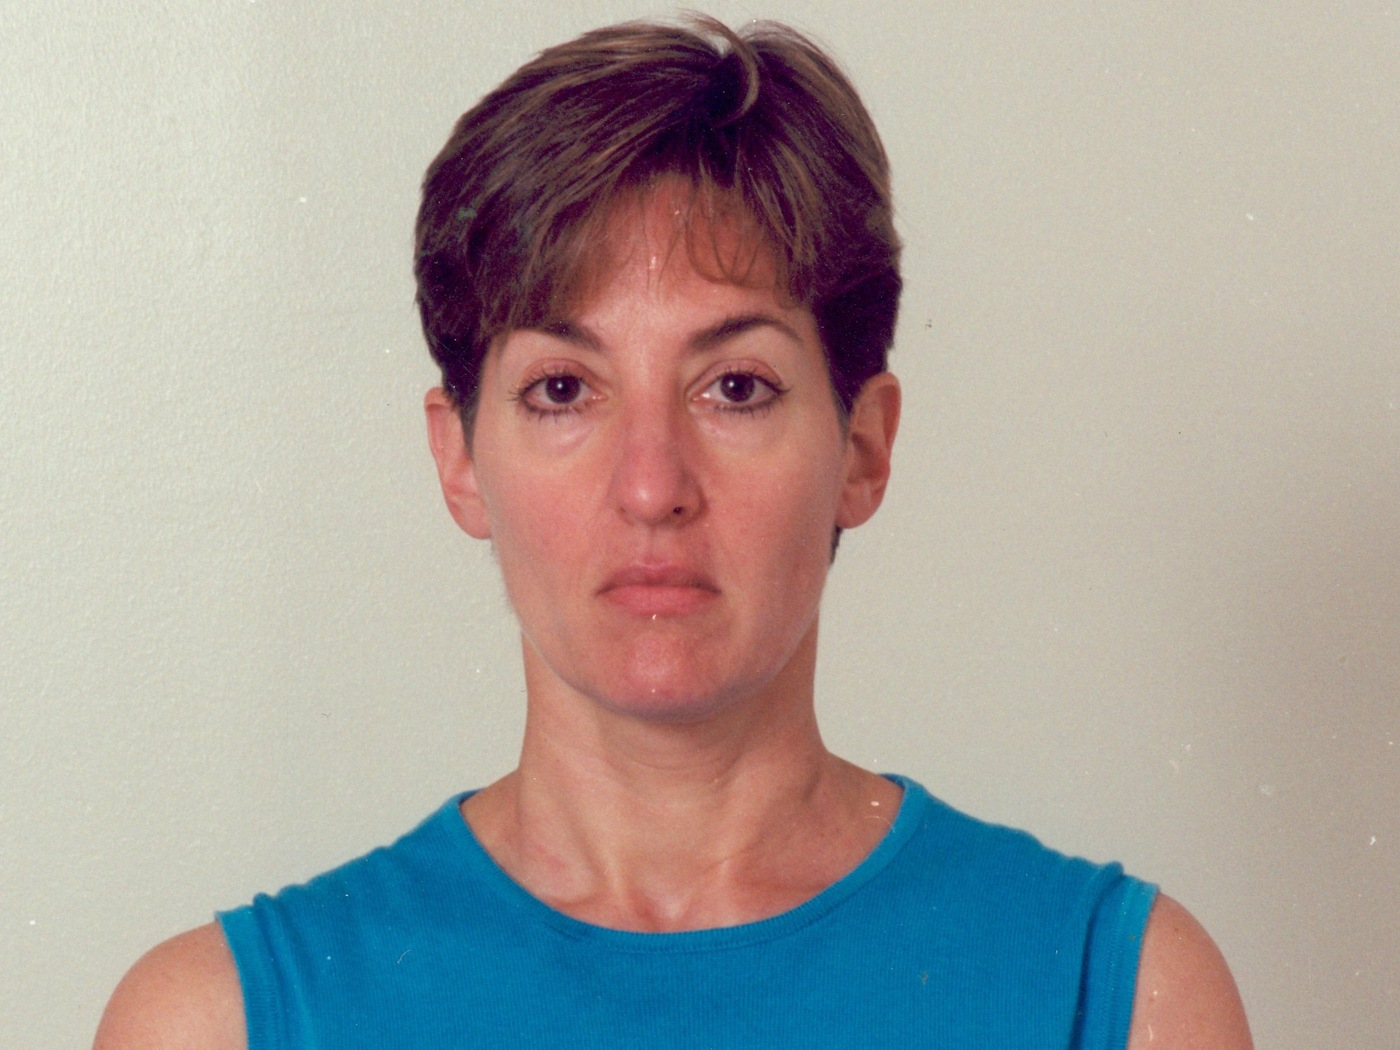 Ana Belen Montes, who pled guilty to spying for the Cubans in 2002 following an FBI investigation. Montes was a senior analyst with the Defense Intelligence Agency.